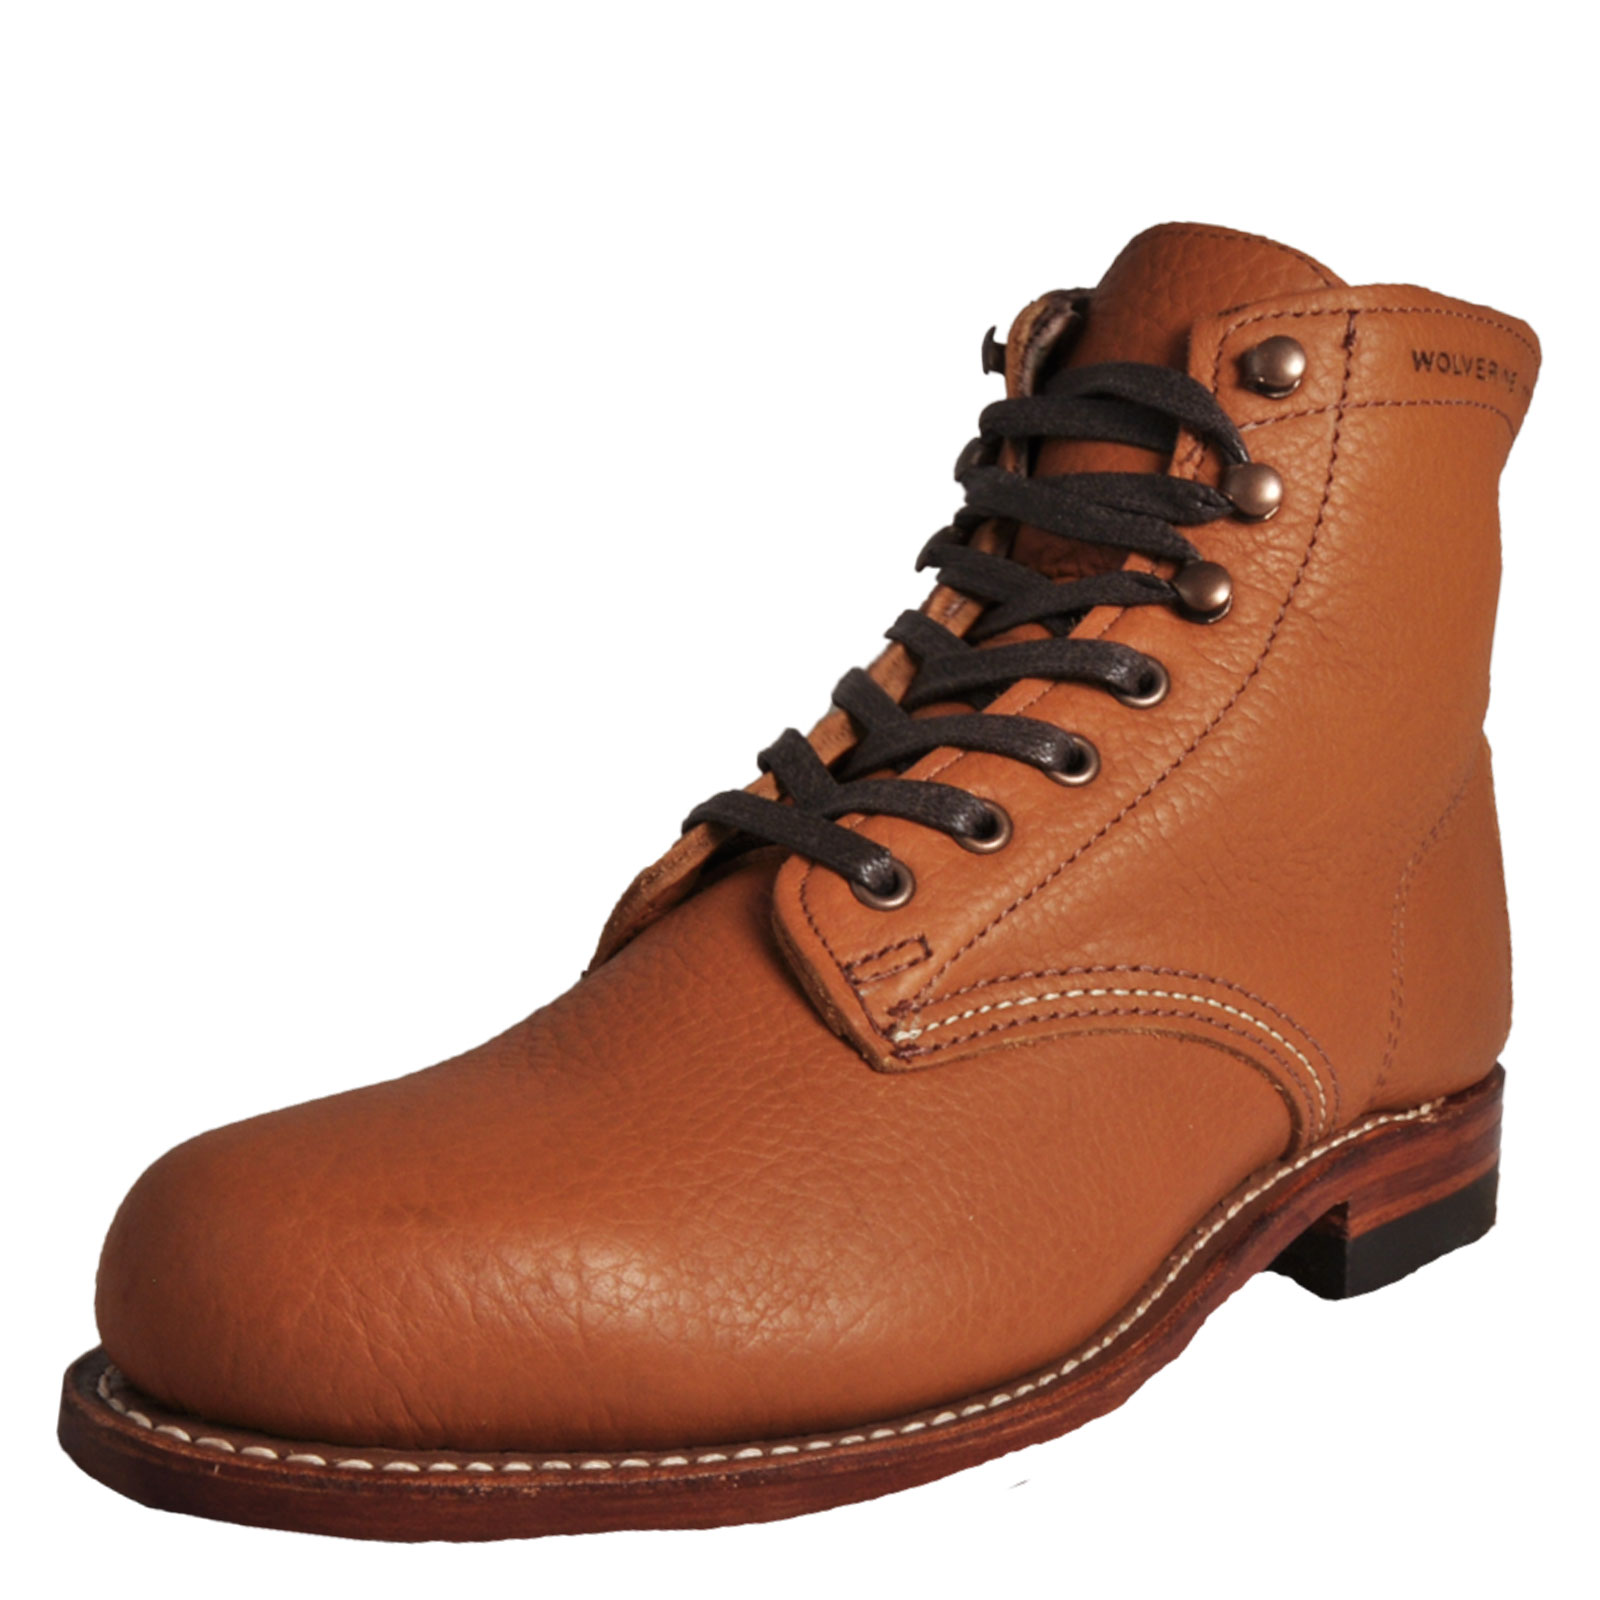 f7fb1220d7a Détails sur Wolverine 1000 Mile Centennial Men's Classic Casual Leather  Boots Tan